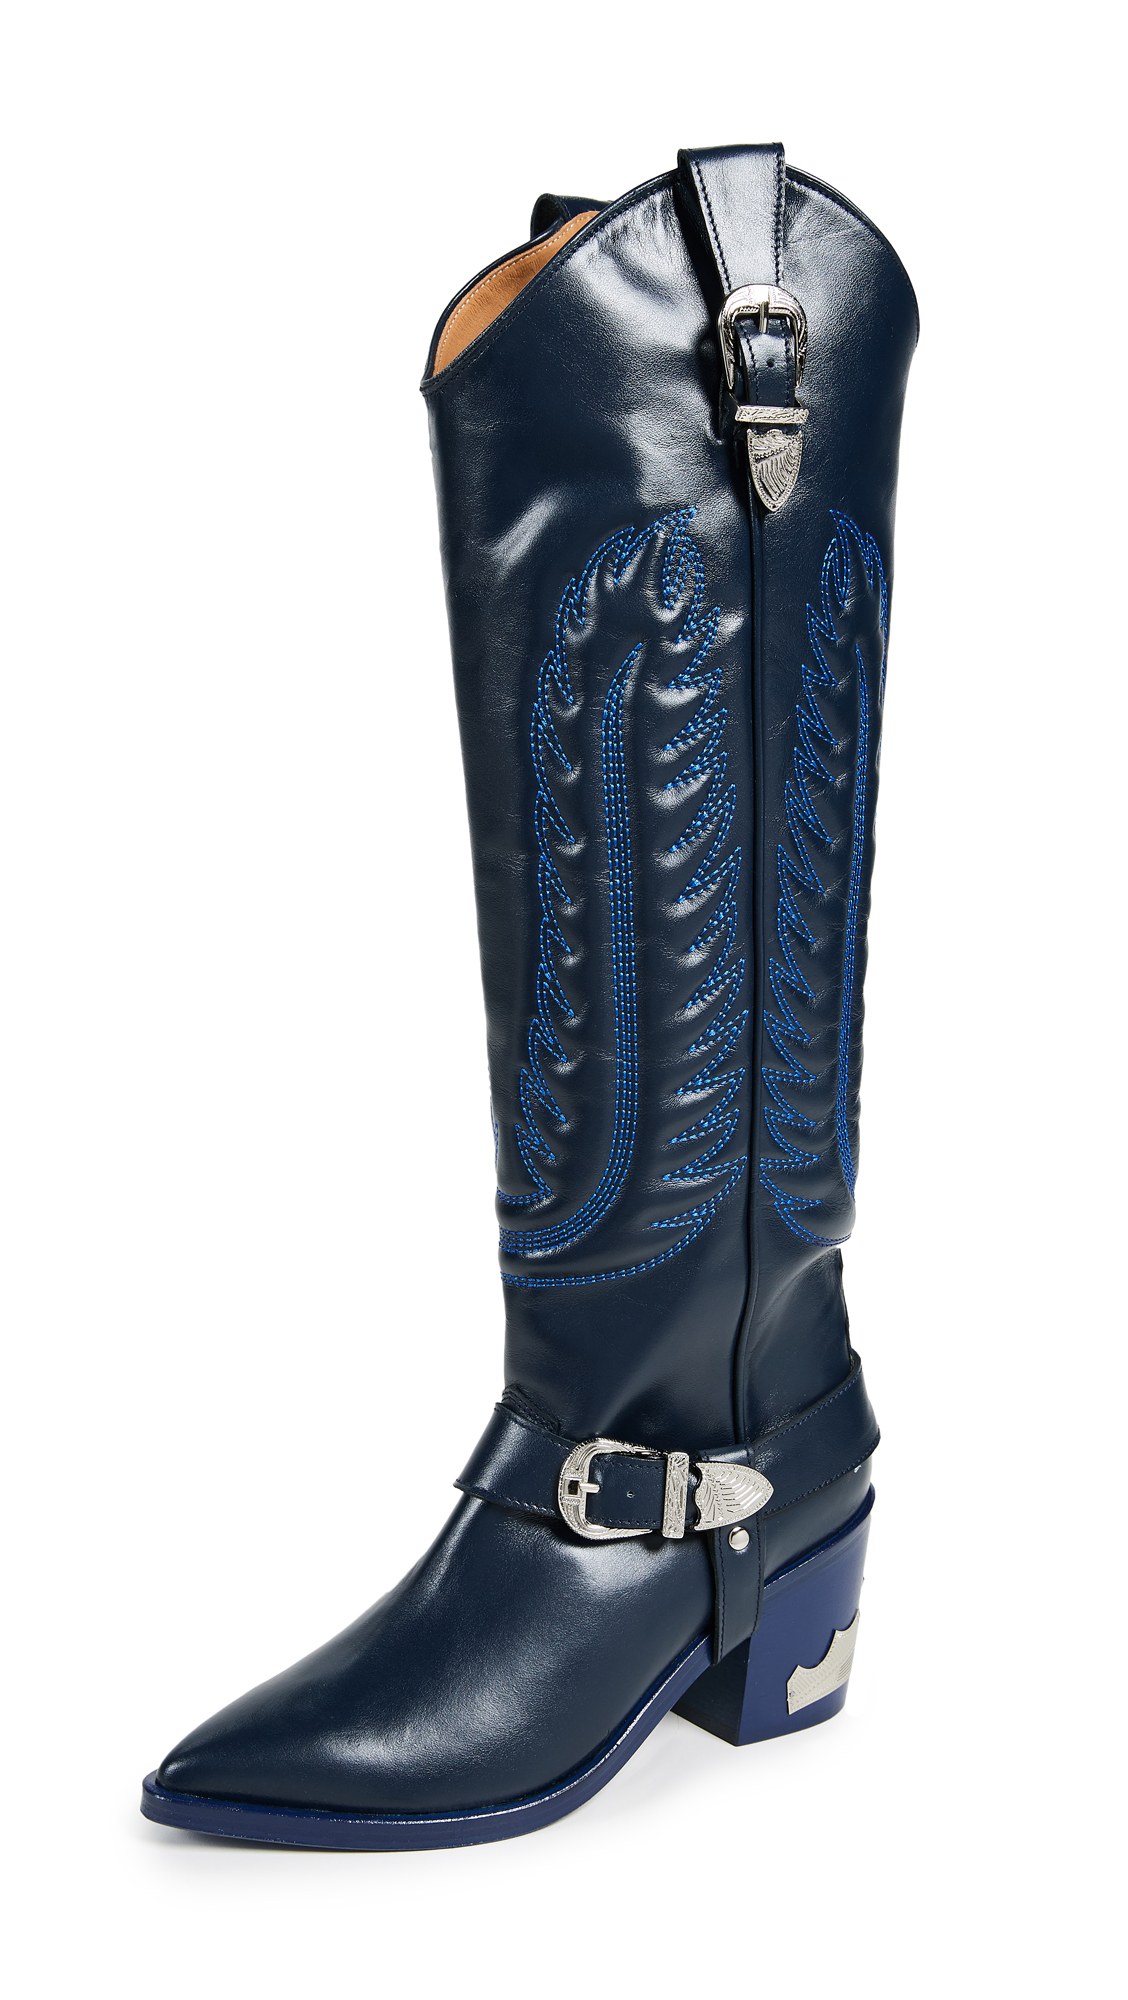 Toga Pulla Tall Buckled Boots - Blue/Grey